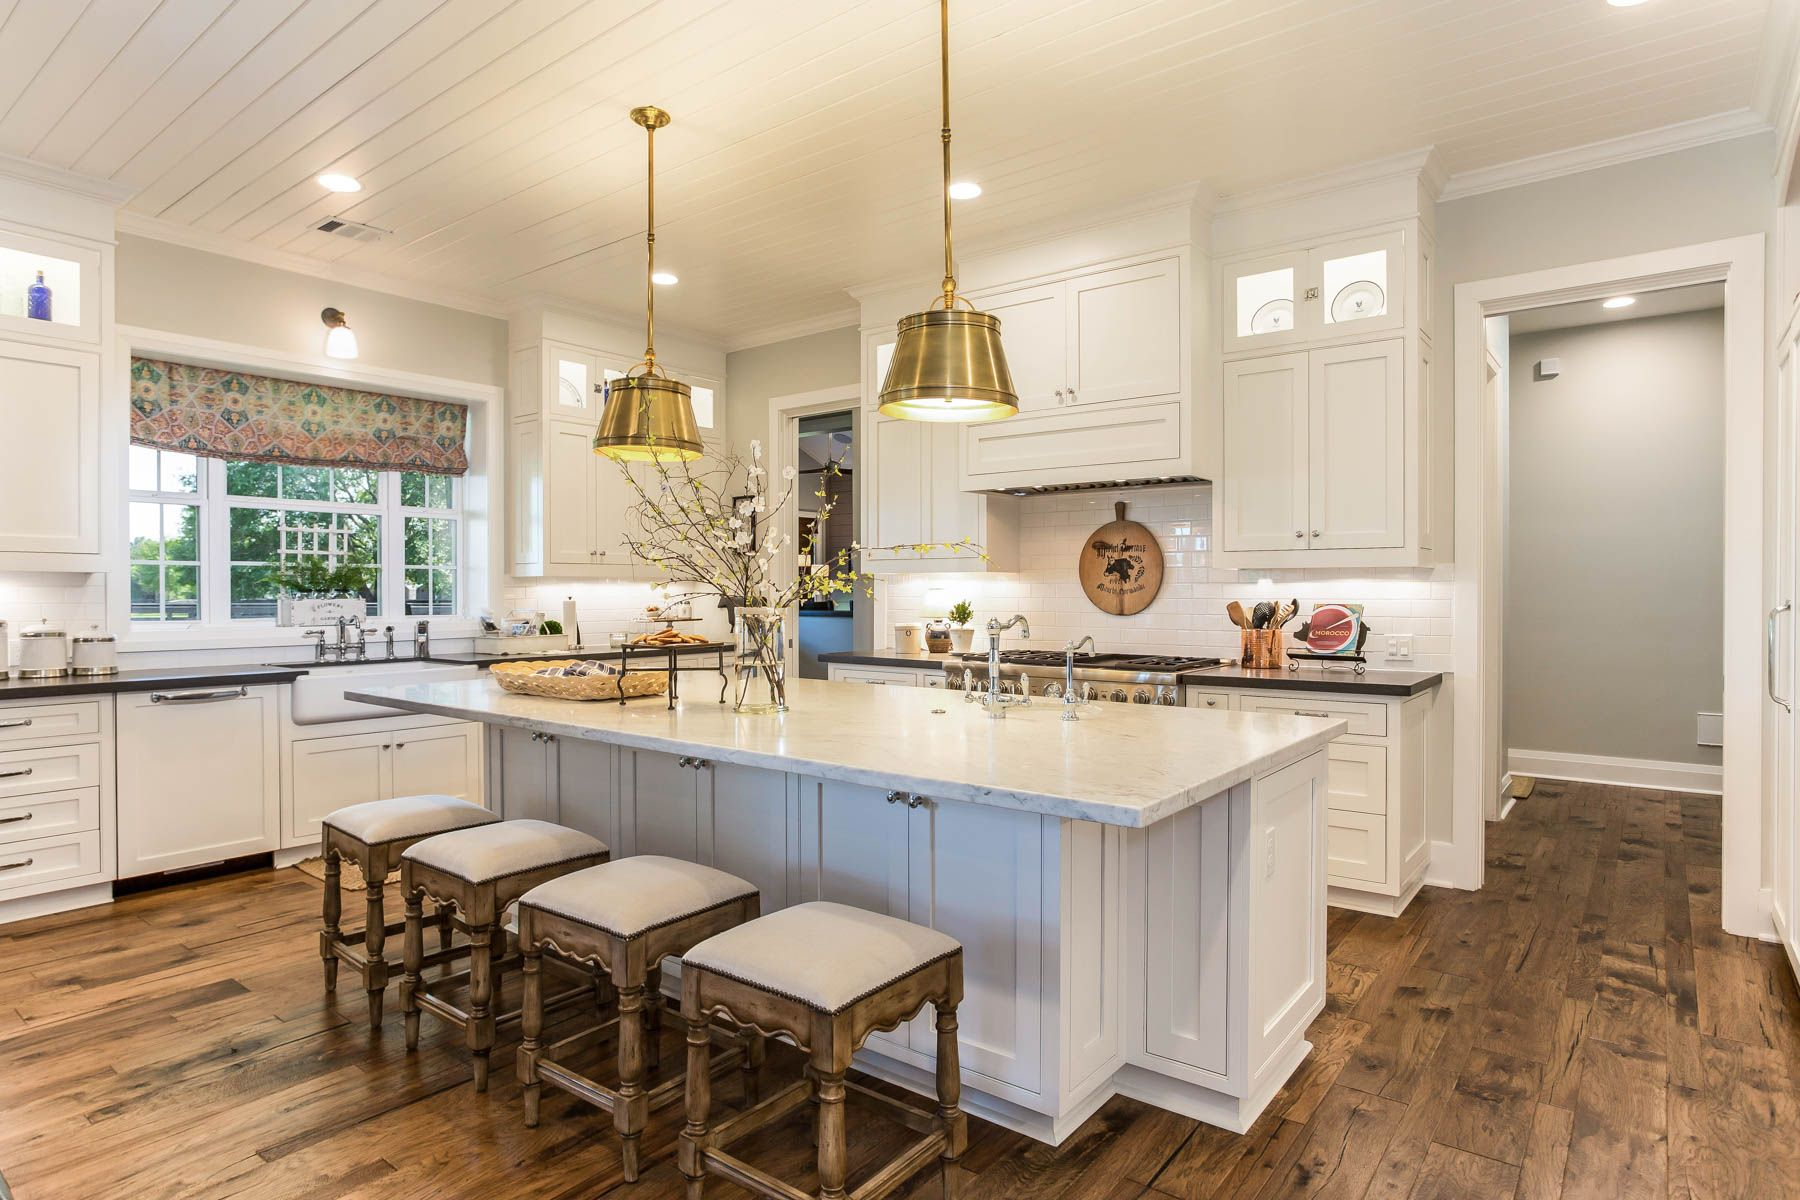 HOME (With images) Farmhouse kitchen design, White